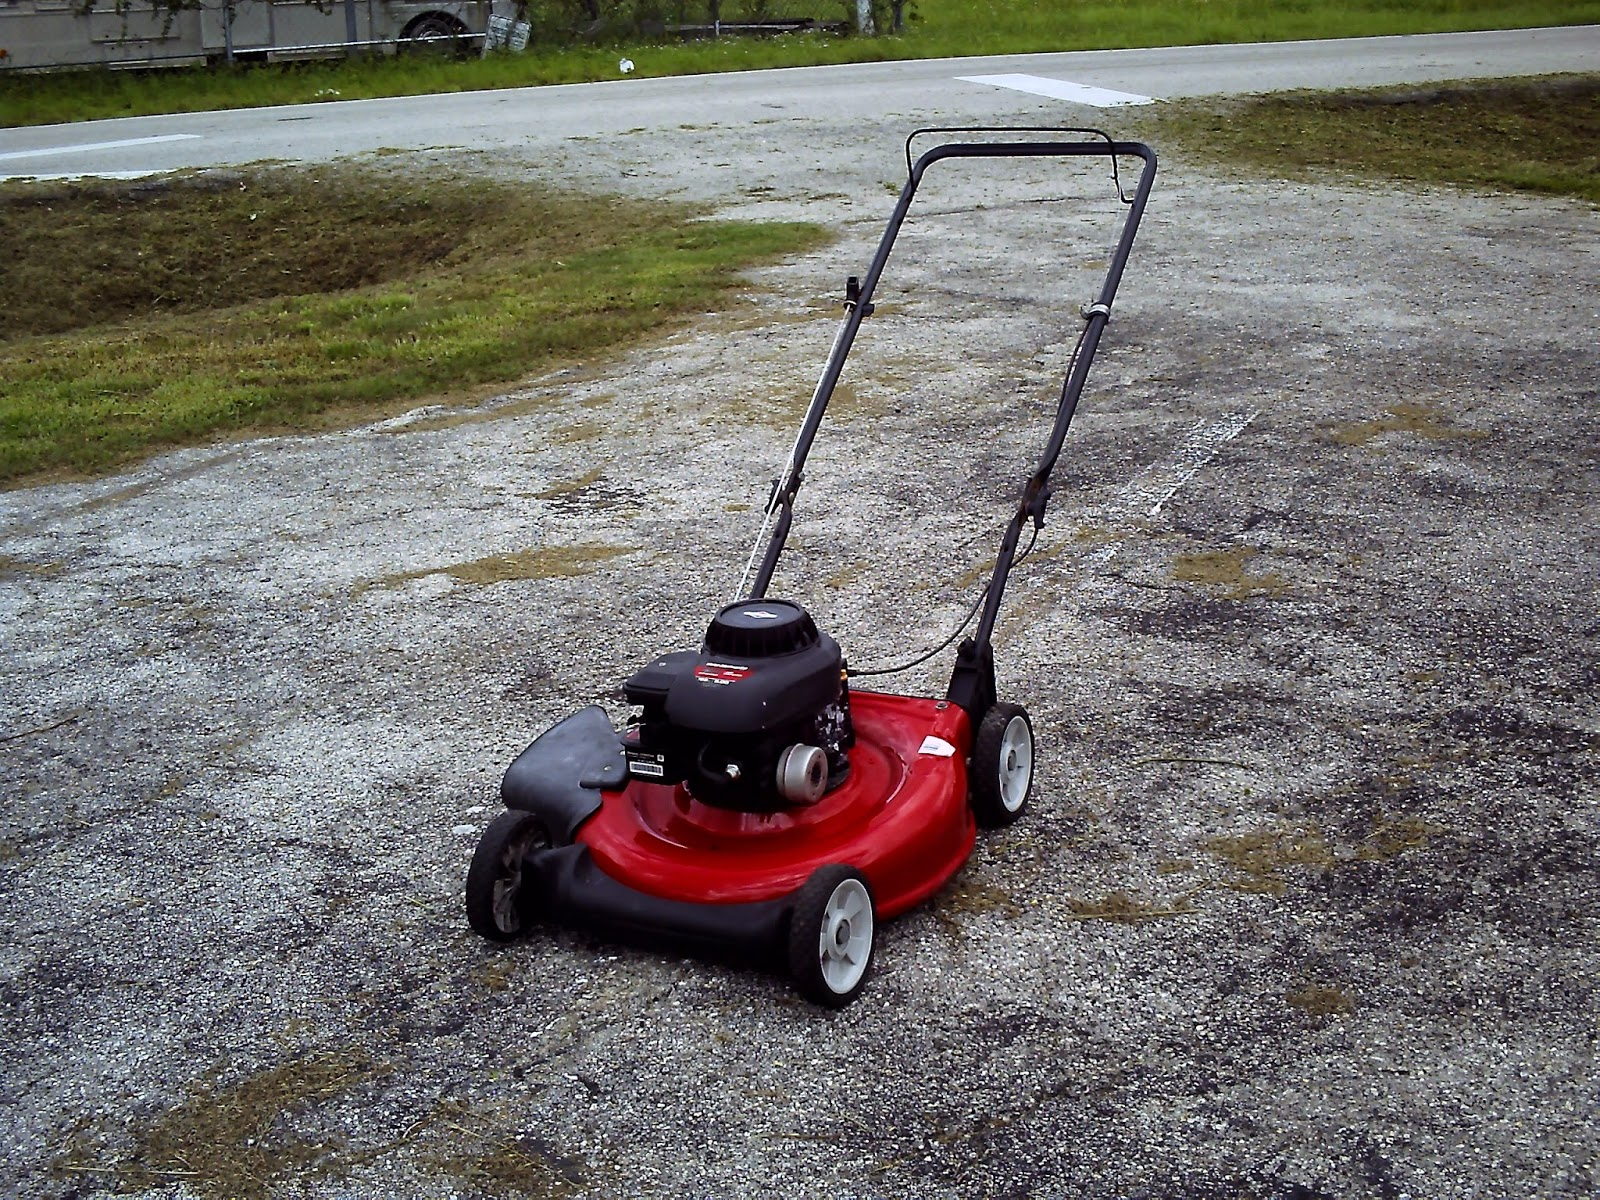 medium resolution of mtd 21 push mower rebuilt and resored to it s former glory has a briggs stratton engine with 5 horses to back it up excellent running working